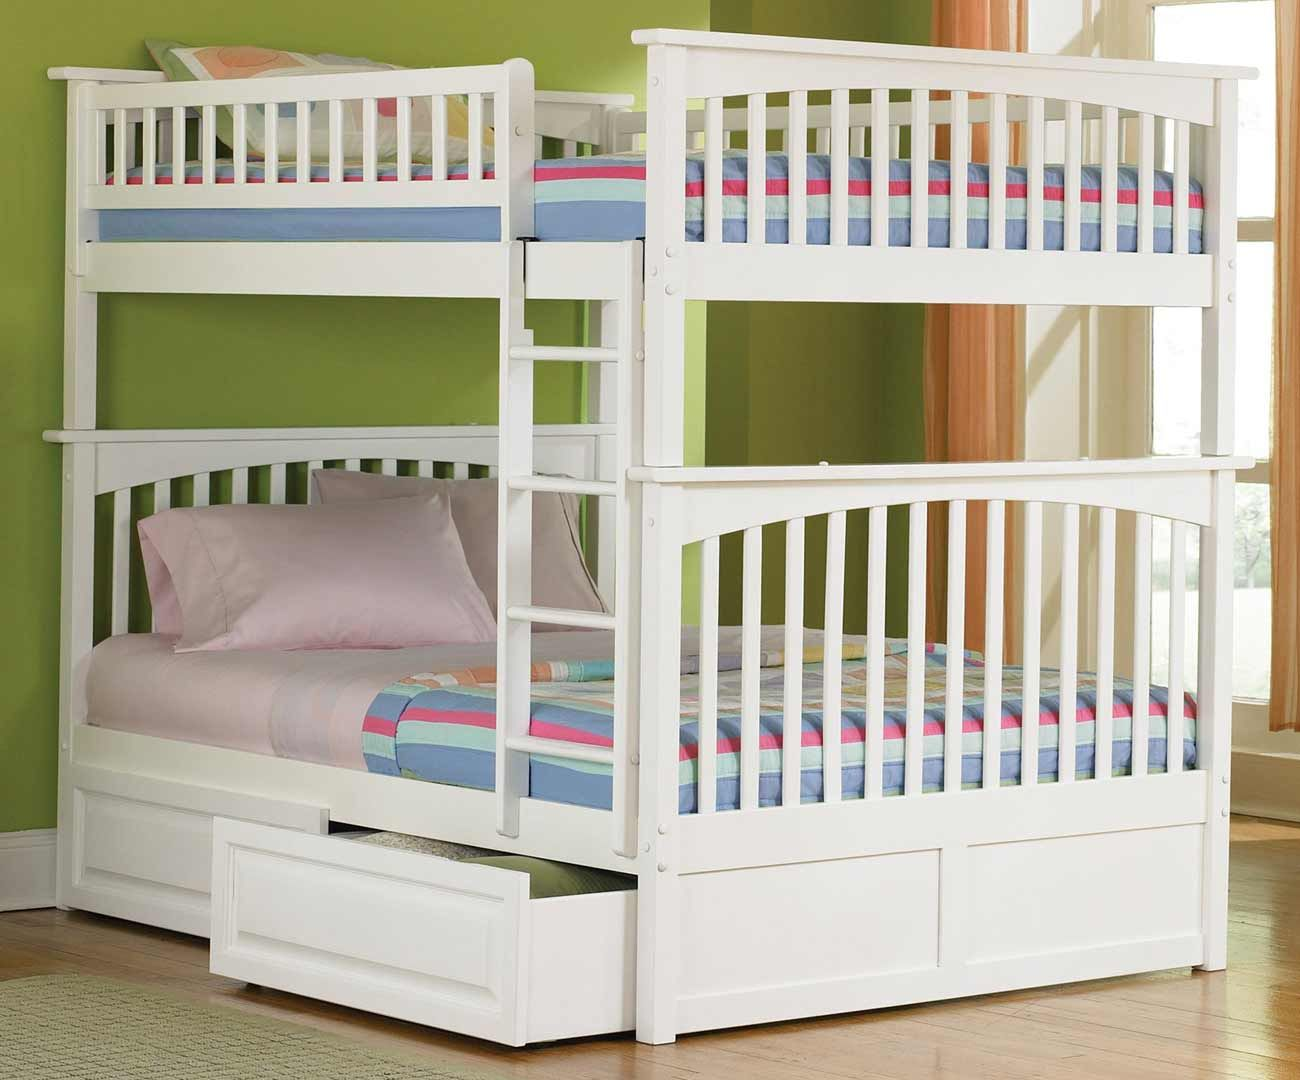 Triple bunk beds for teenagers - Teen Room Ideas For Girls With Bunkbeds Columbia Full Size White Bunk Beds For Teens